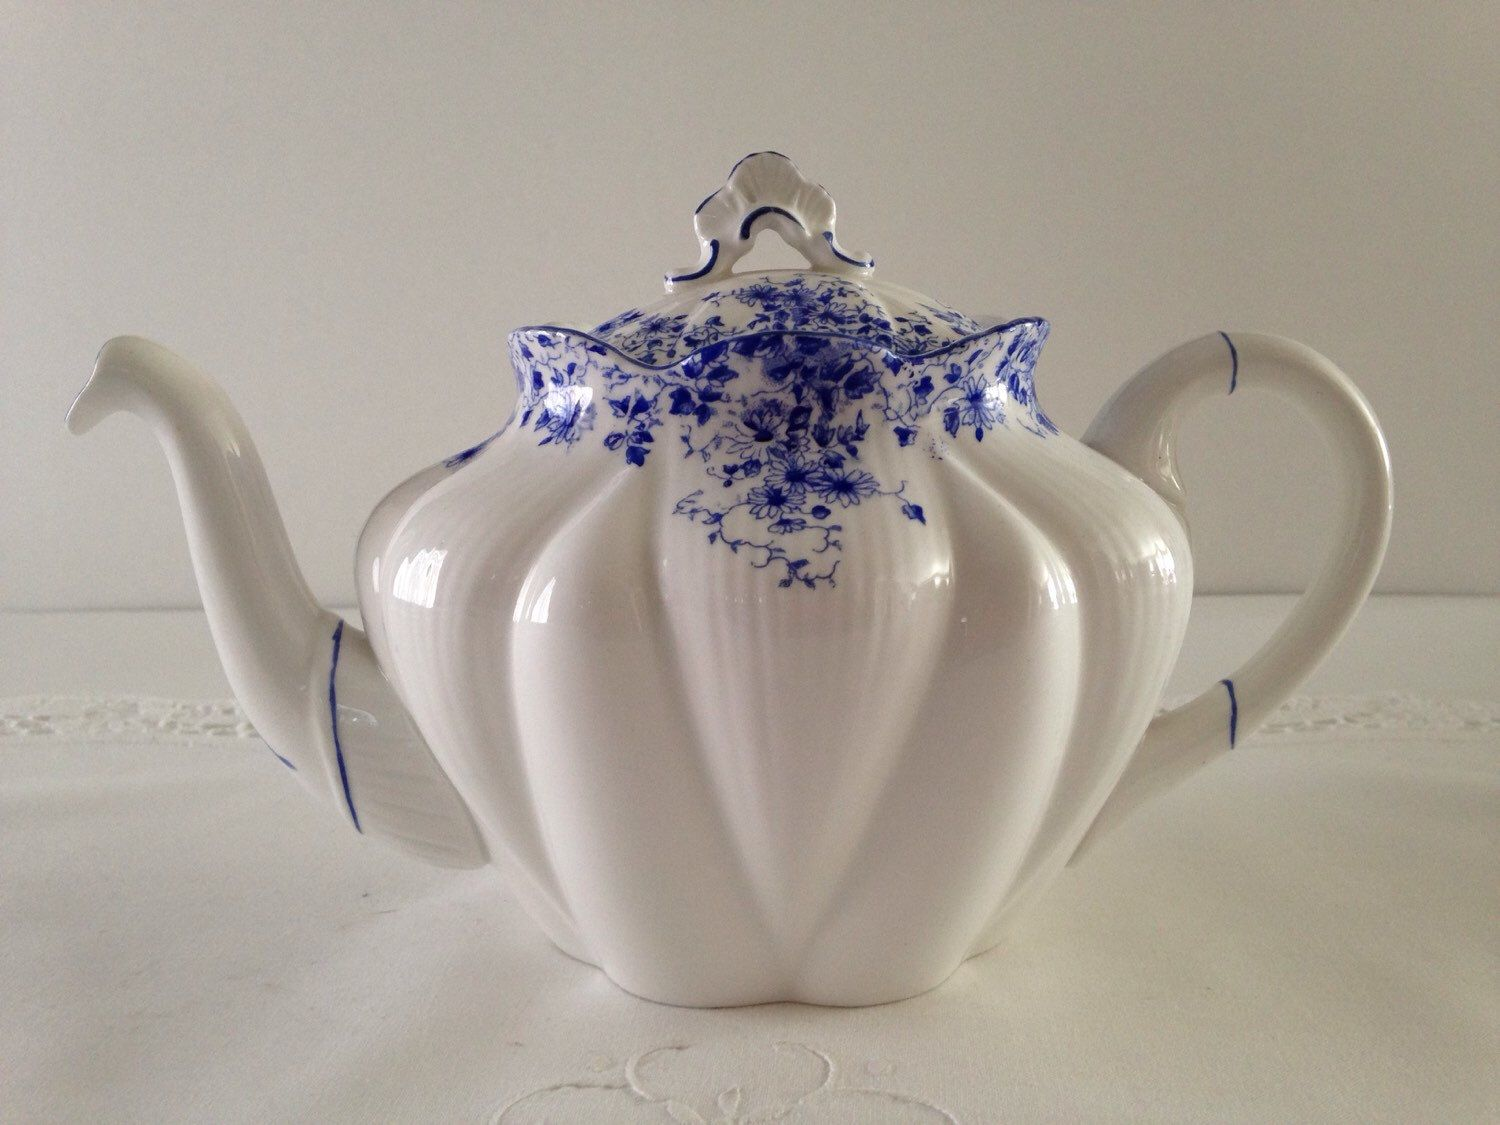 Large Dainty Blue Century Rose Teapot  by TheEclecticAvenue on Etsy https://www.etsy.com/listing/209732408/large-dainty-blue-century-rose-teapot